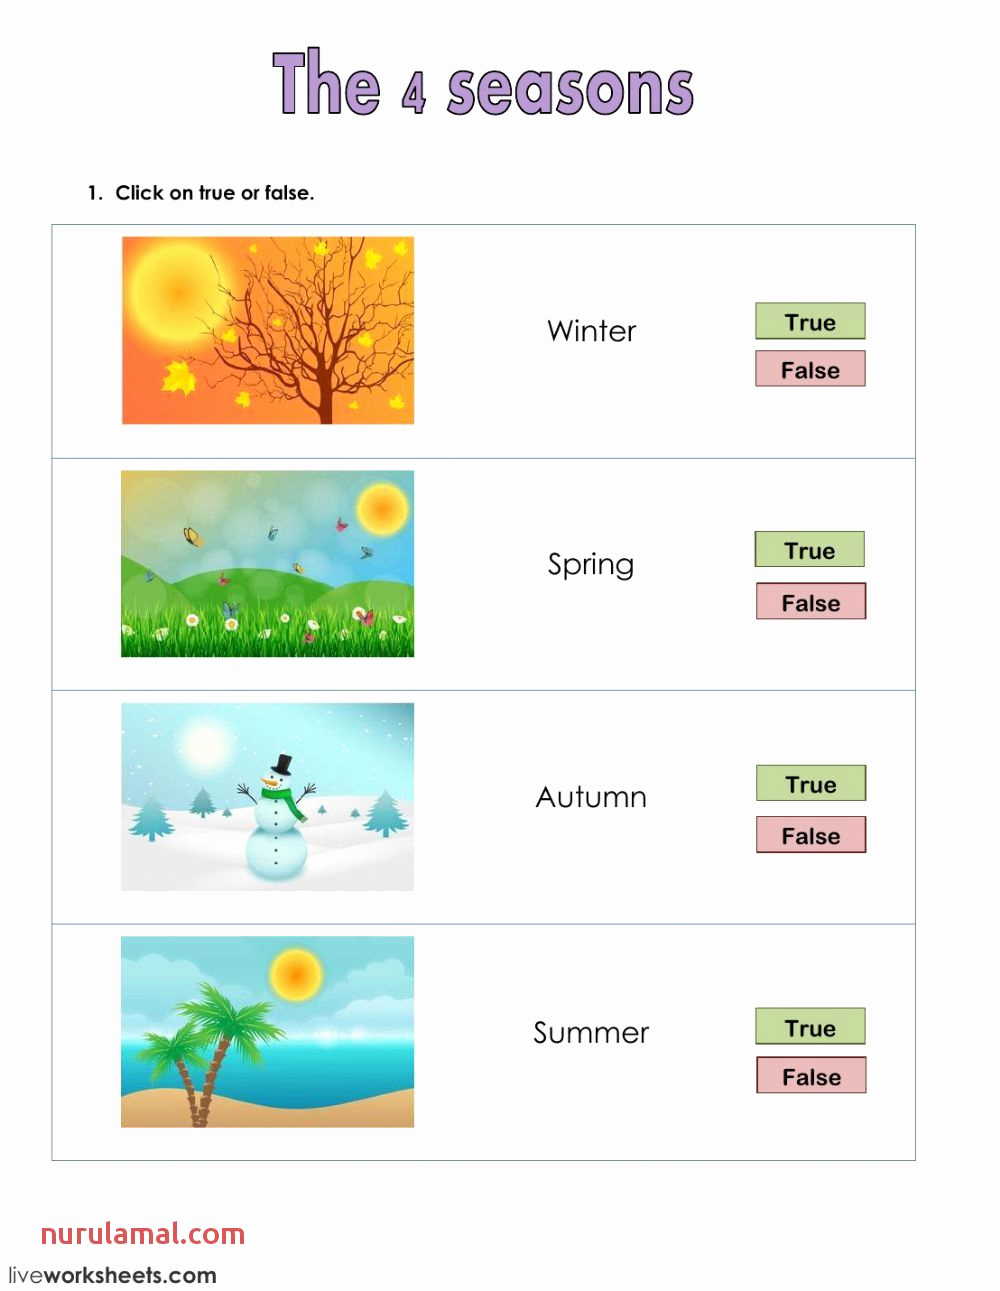 Seasons Worksheets for First Grade Unique Seasons Worksheets First Grade в 2020 г